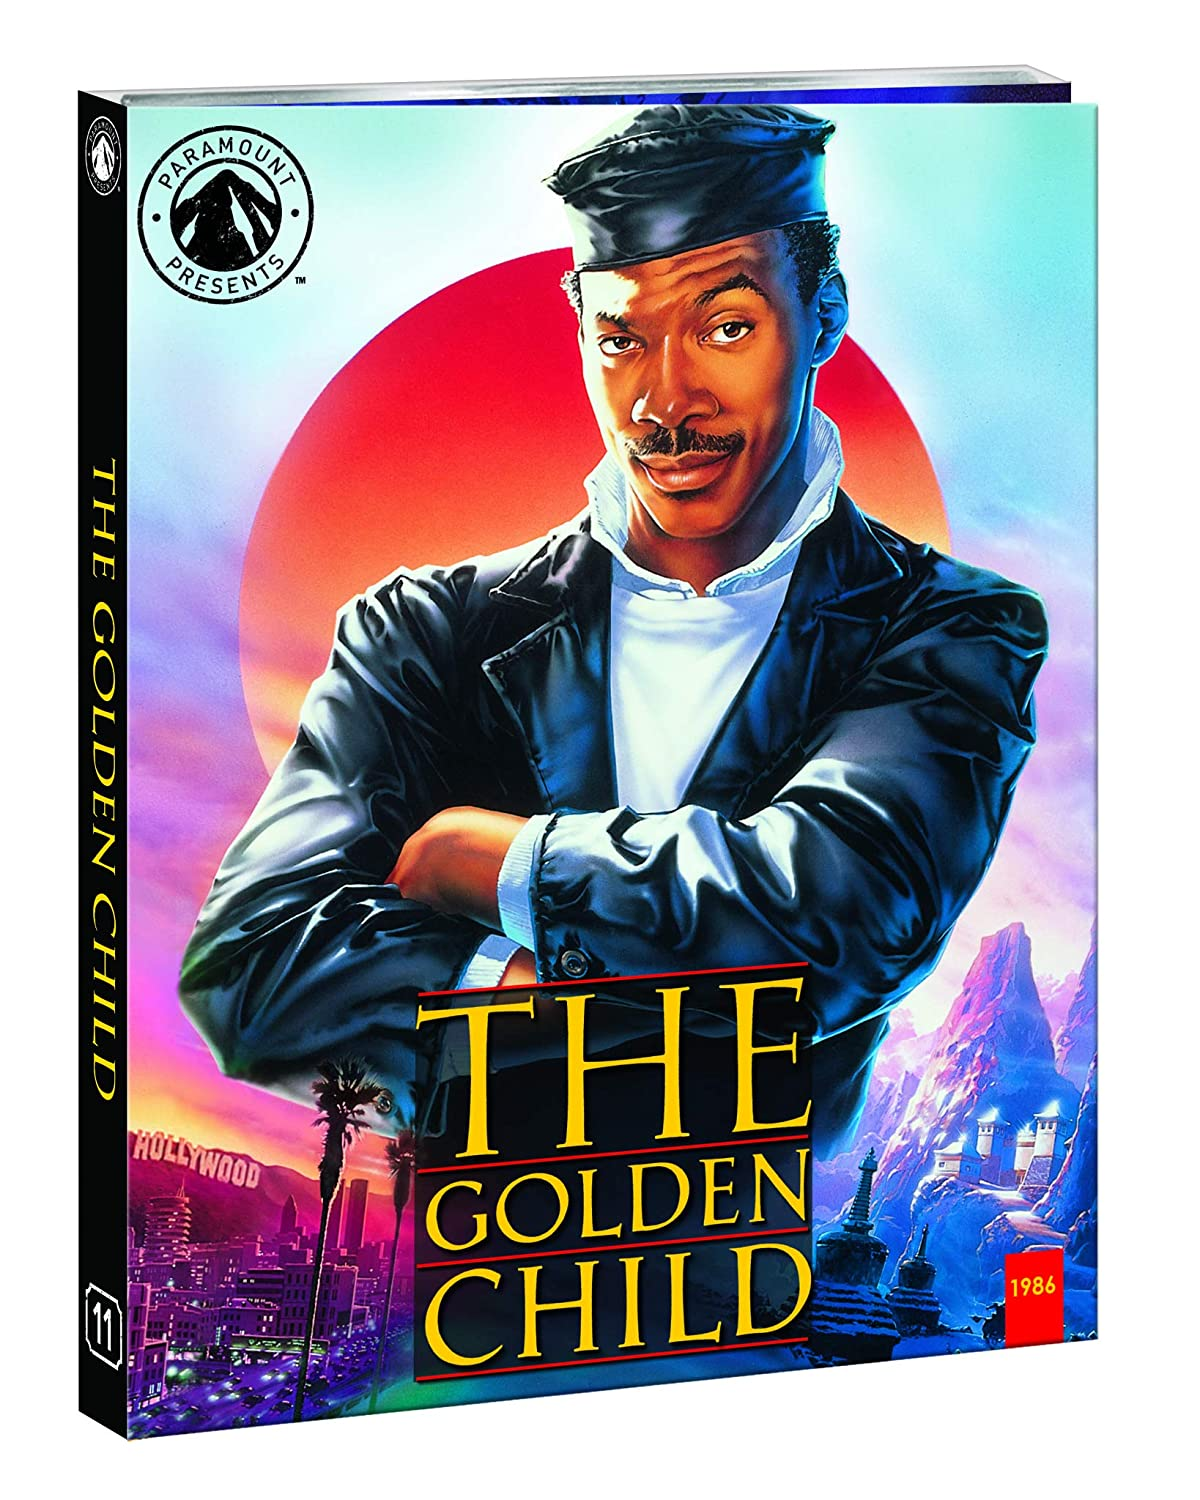 PARAMOUNT ANNOUNCES THE GOLDEN CHILD BLU-RAY AS PART OF PARAMOUNT PRESENTS LINE